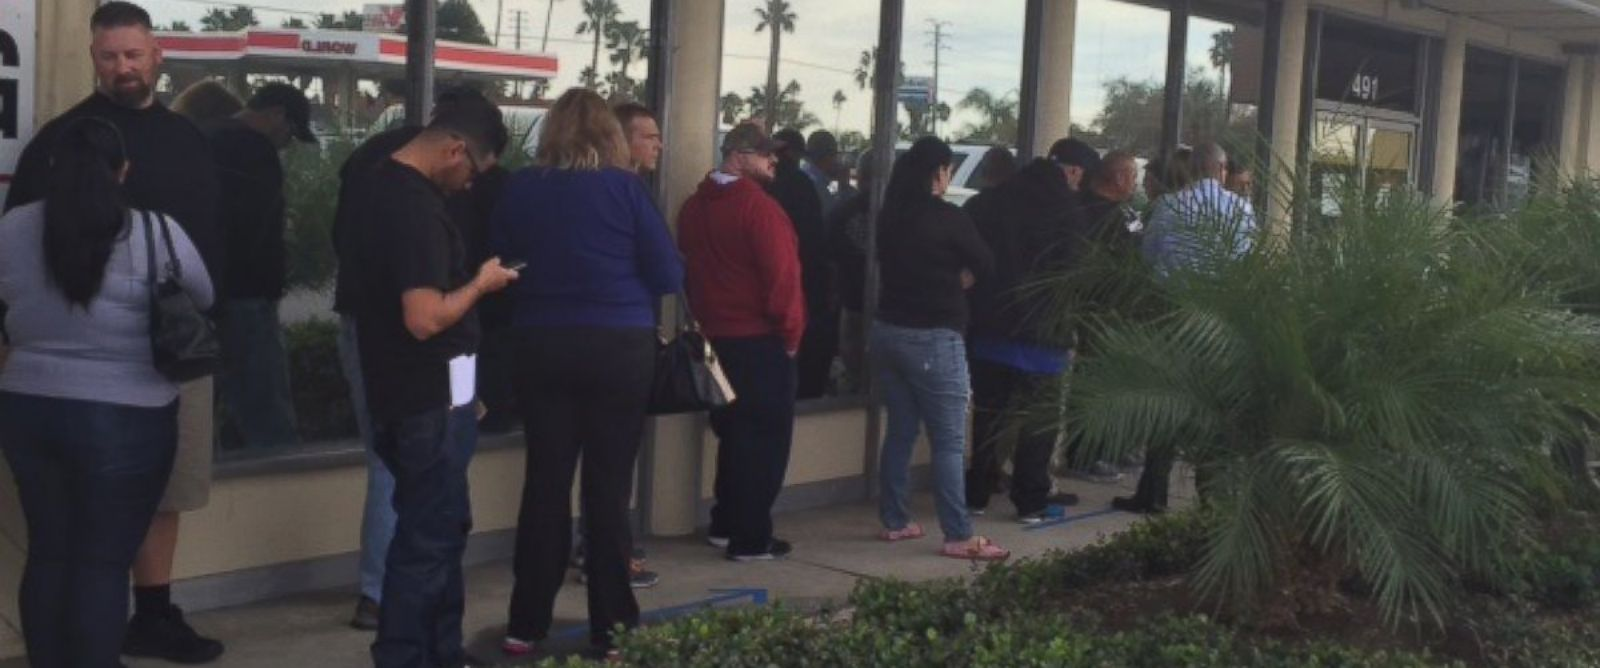 PHOTO: People lined up at the Turners Outdoorsman gun shop in Southern California, Dec. 6, 2015.